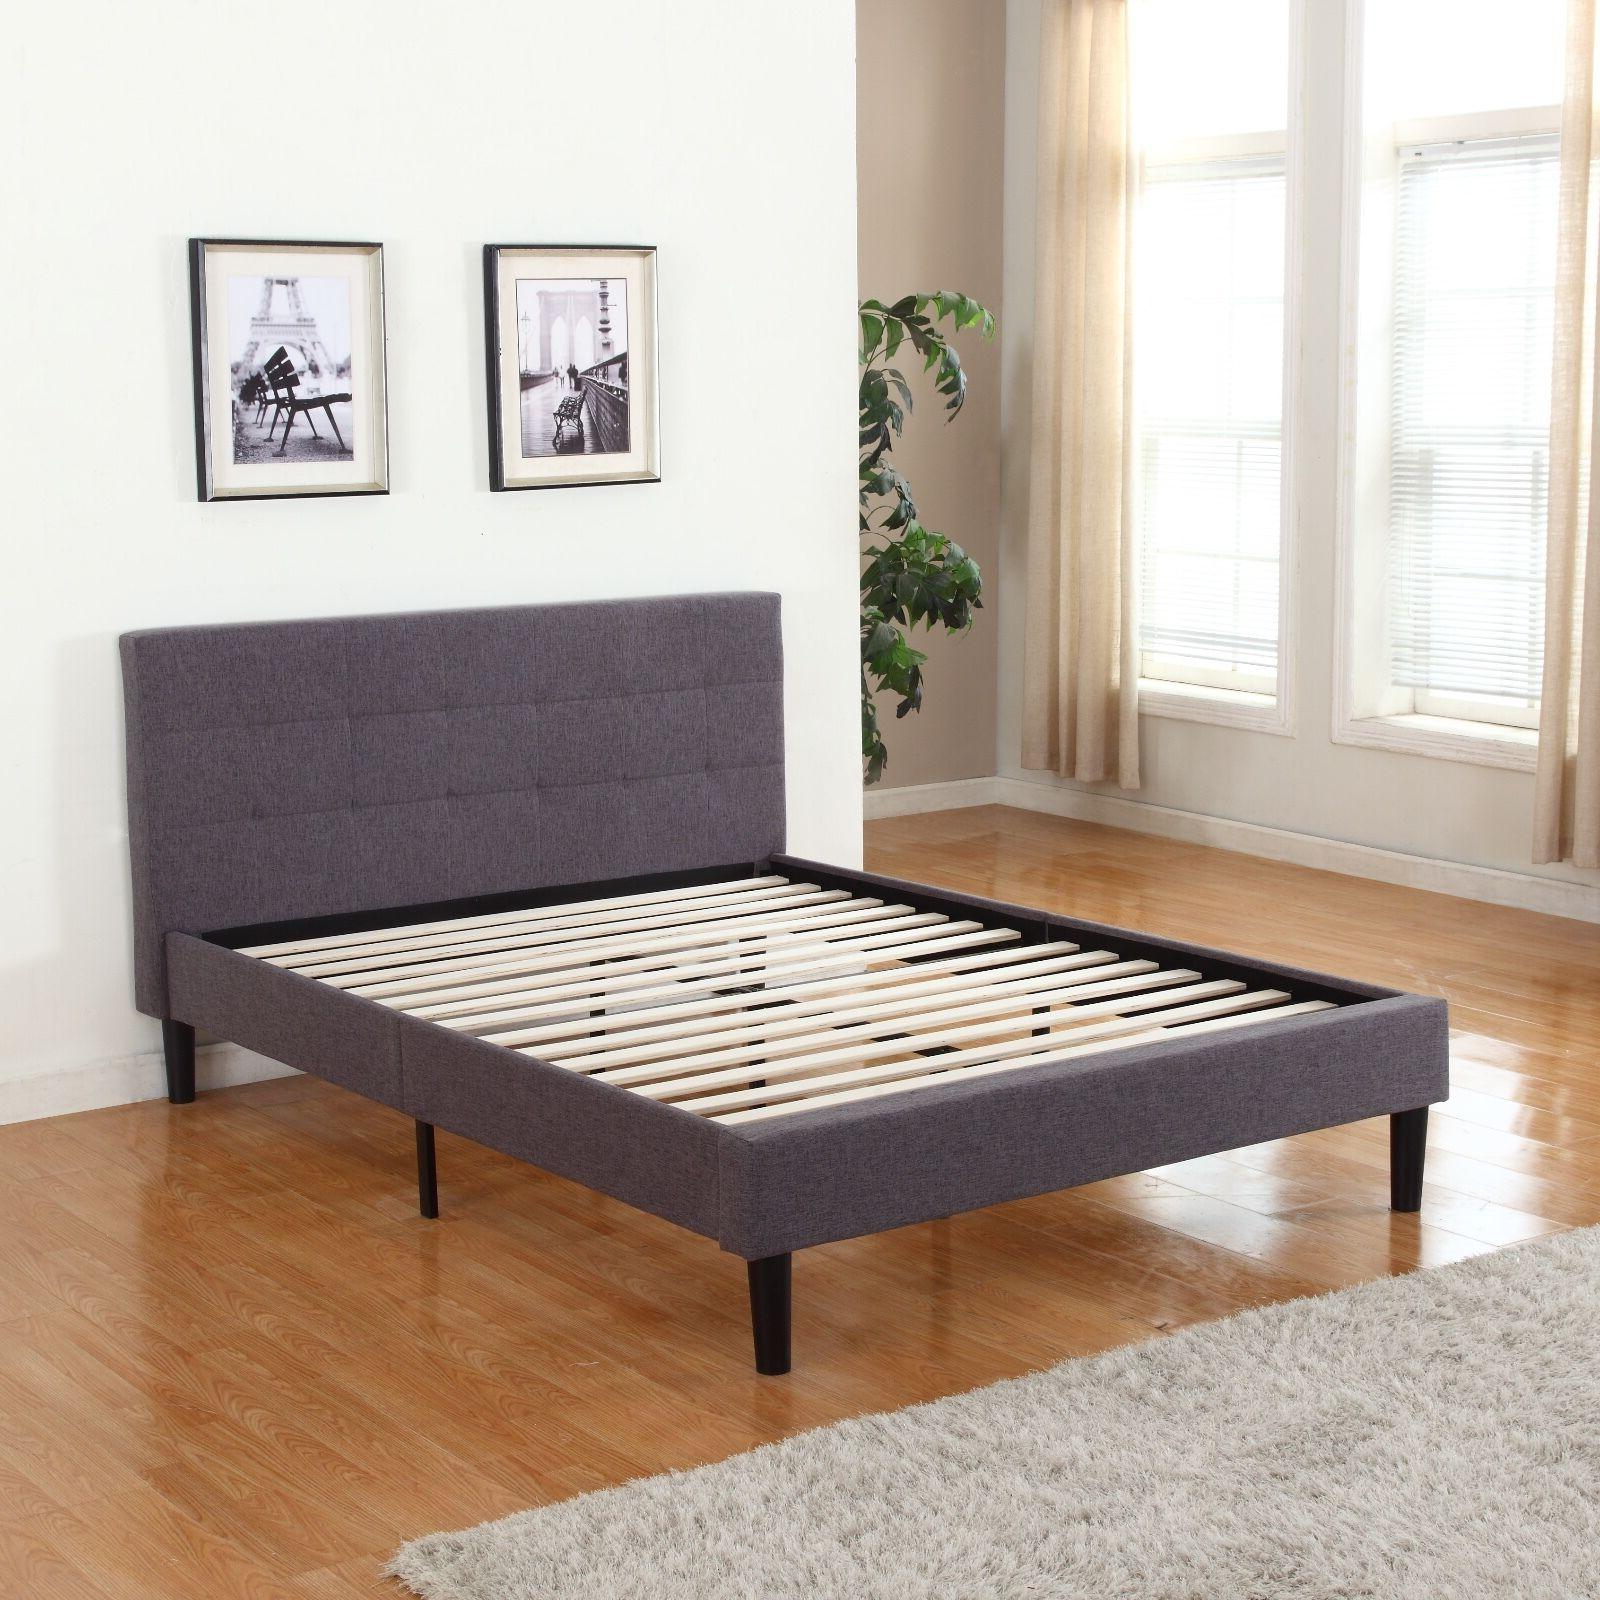 Grey Fabric Upholstered Platform Bed with Slats, Full